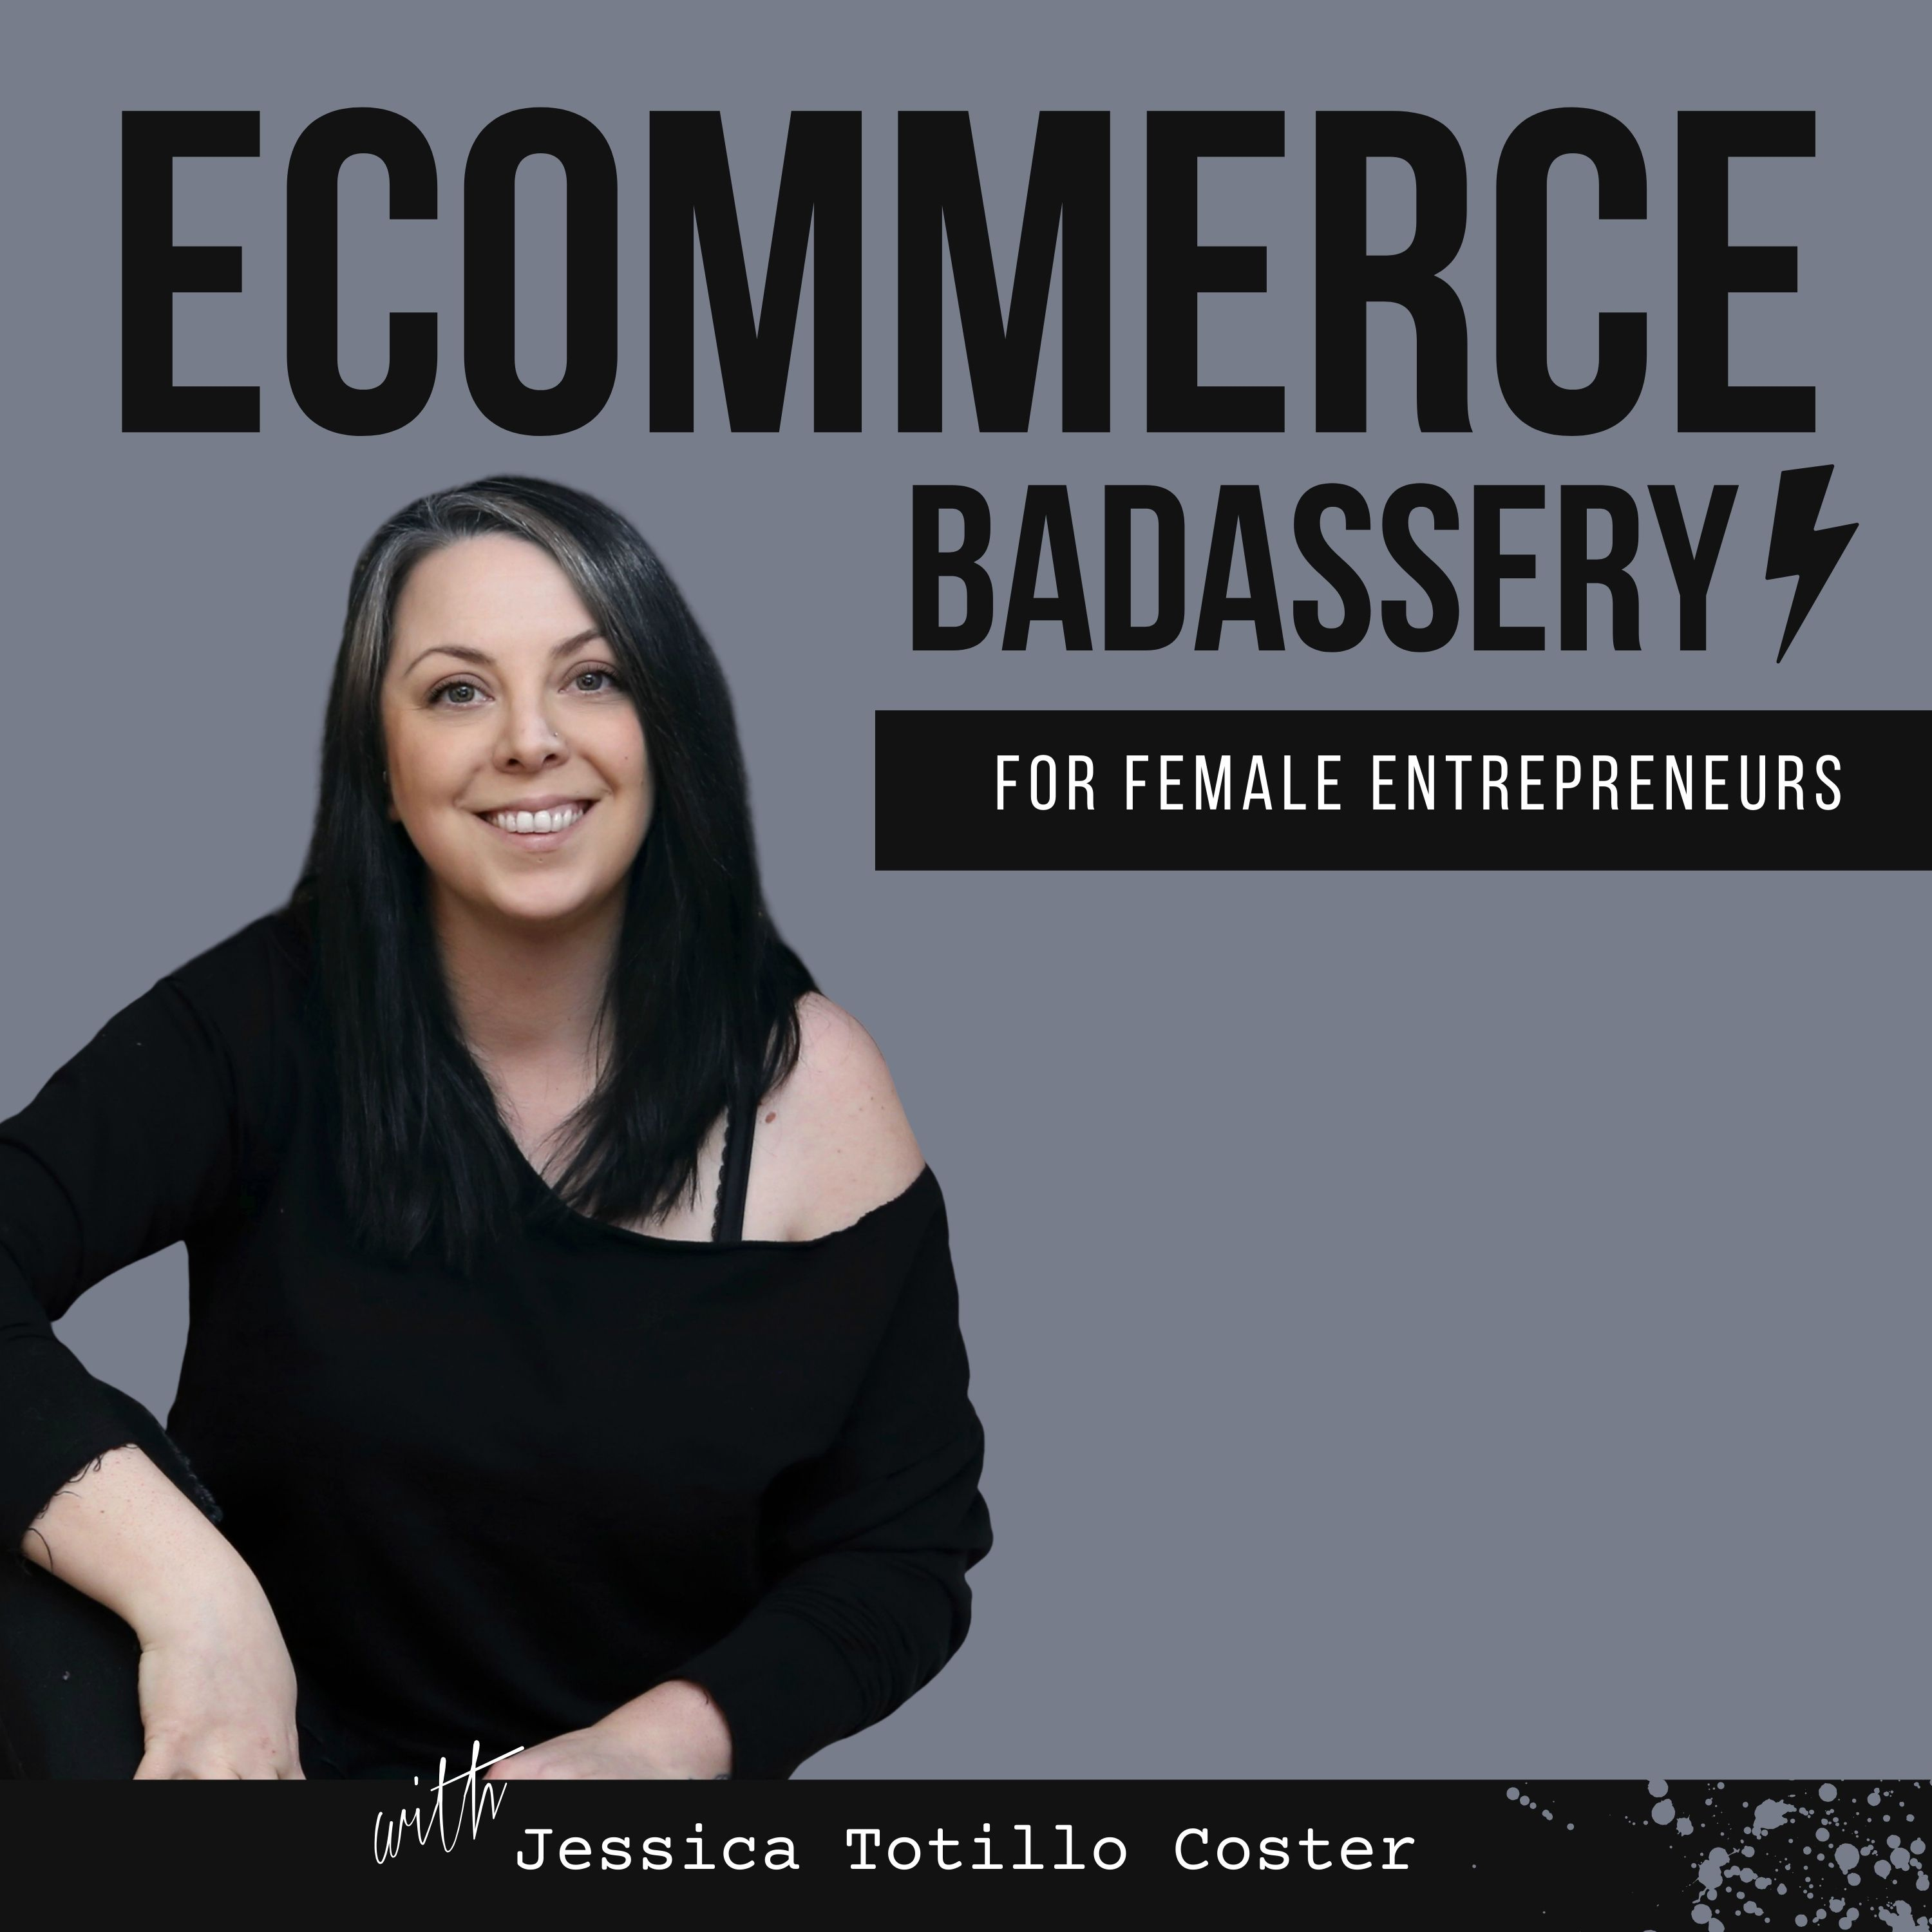 Getting Your Product On Store Shelves: How to Wholesale with Katie Hunt